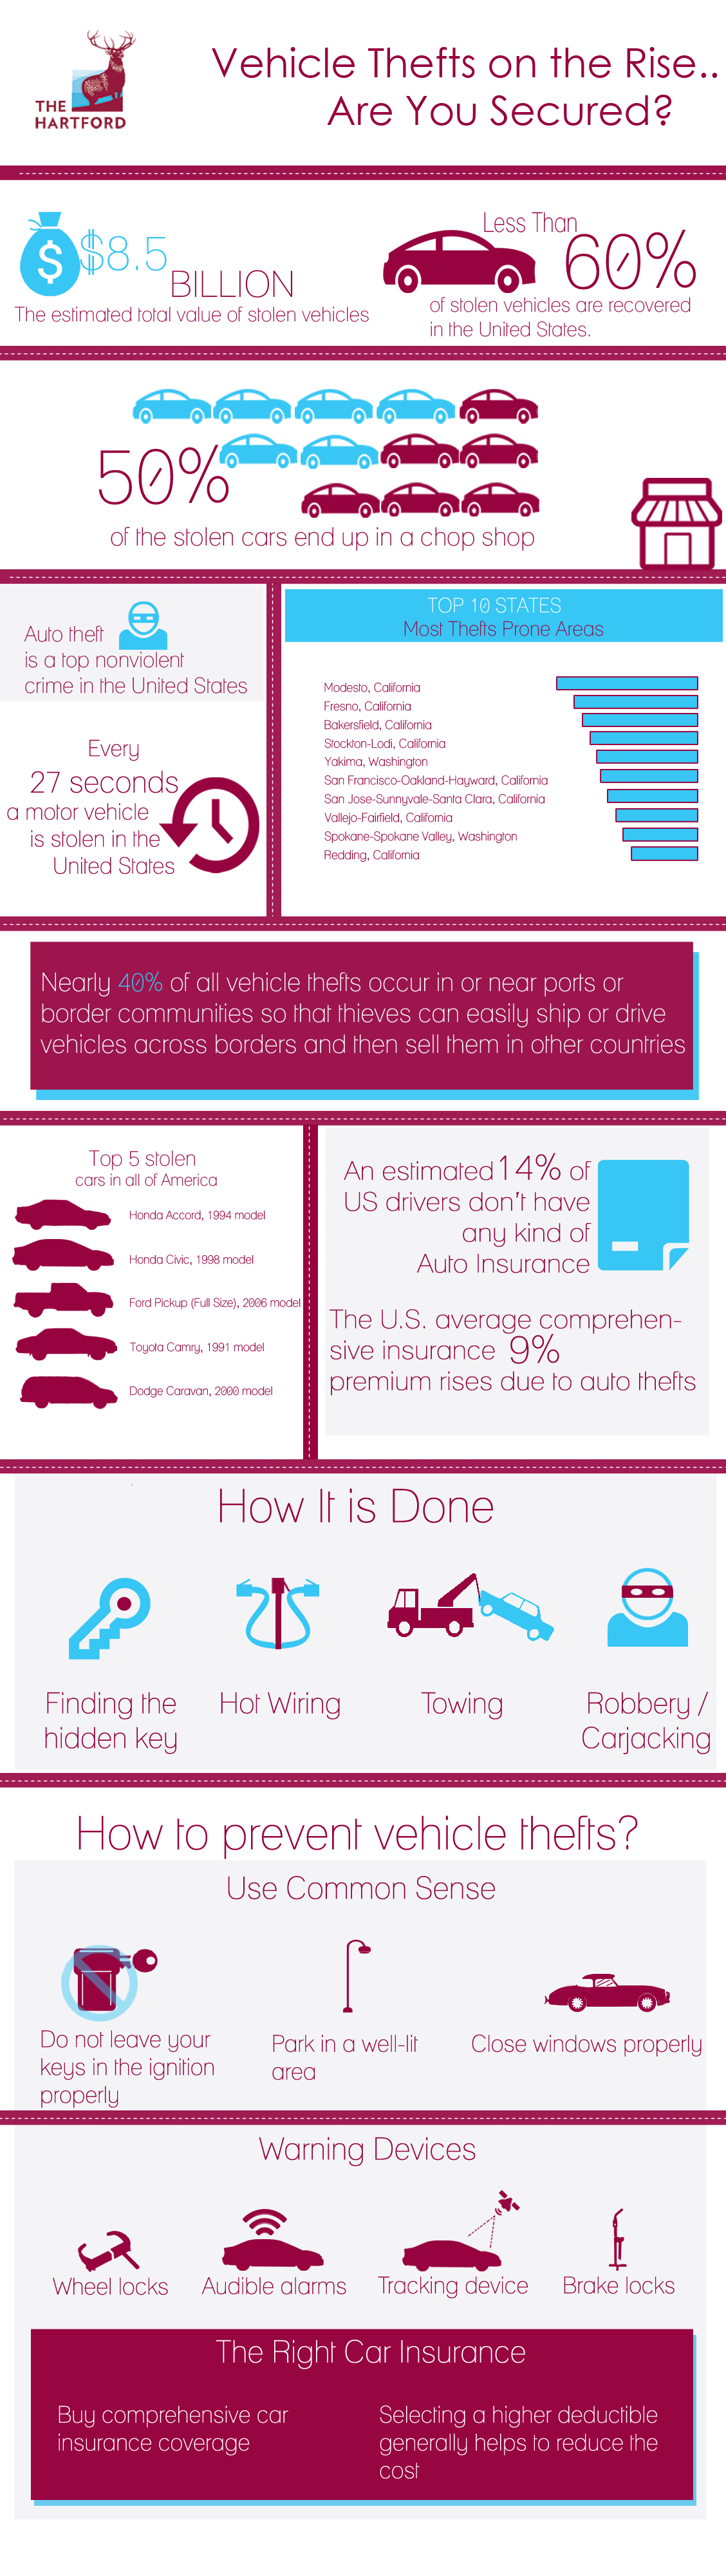 With vehicular theft on the rise, this infographic gives